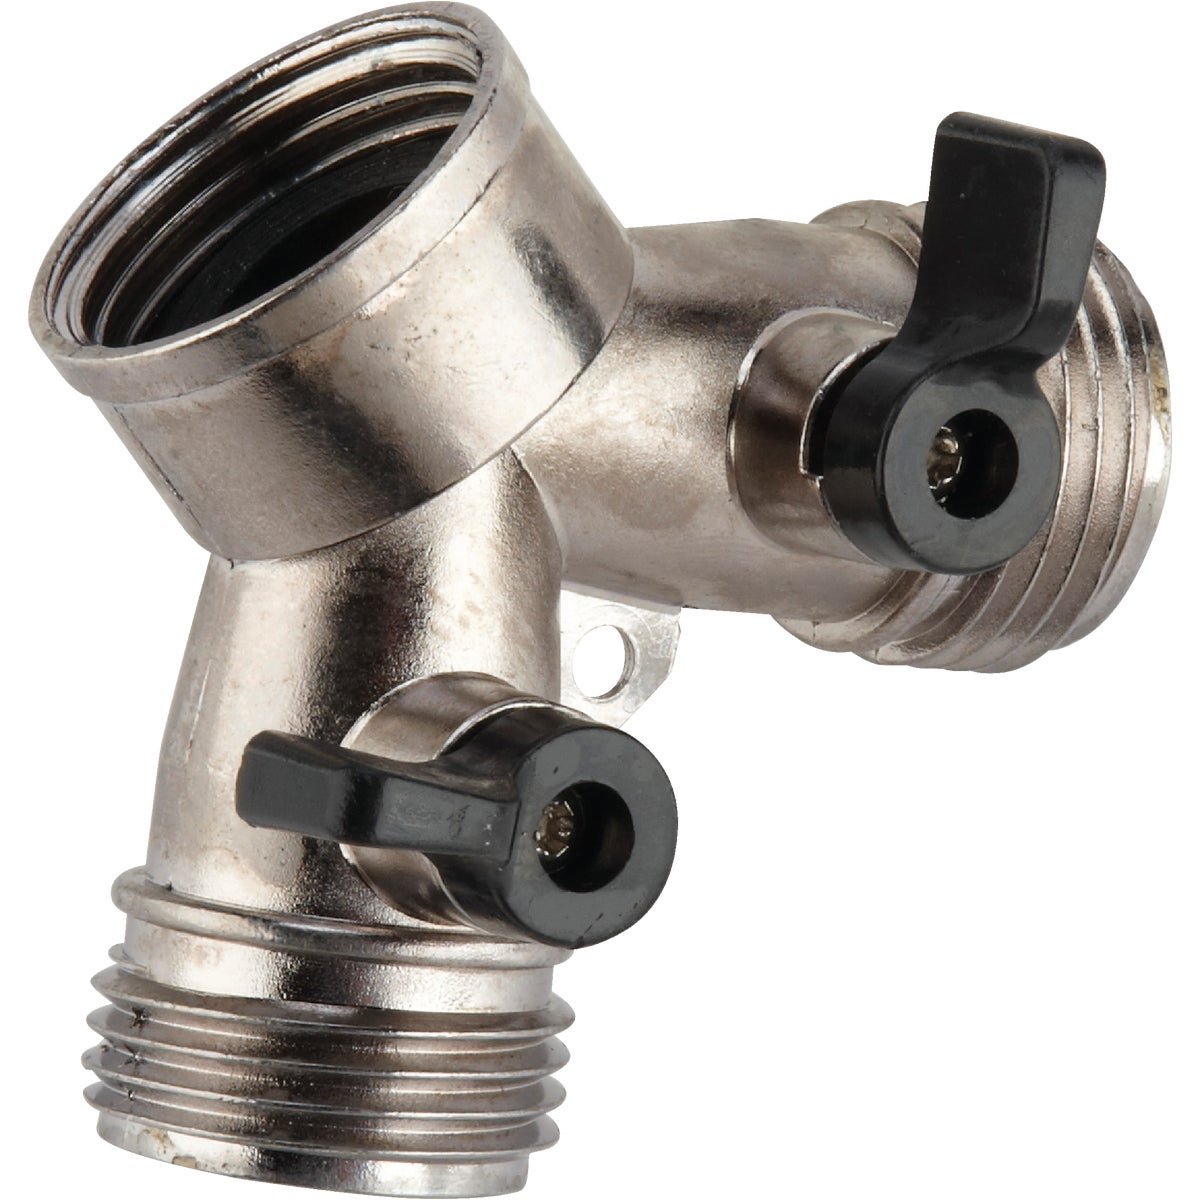 METAL SHUT OFF Y-VALVE - 20113 by Camco Mfg.